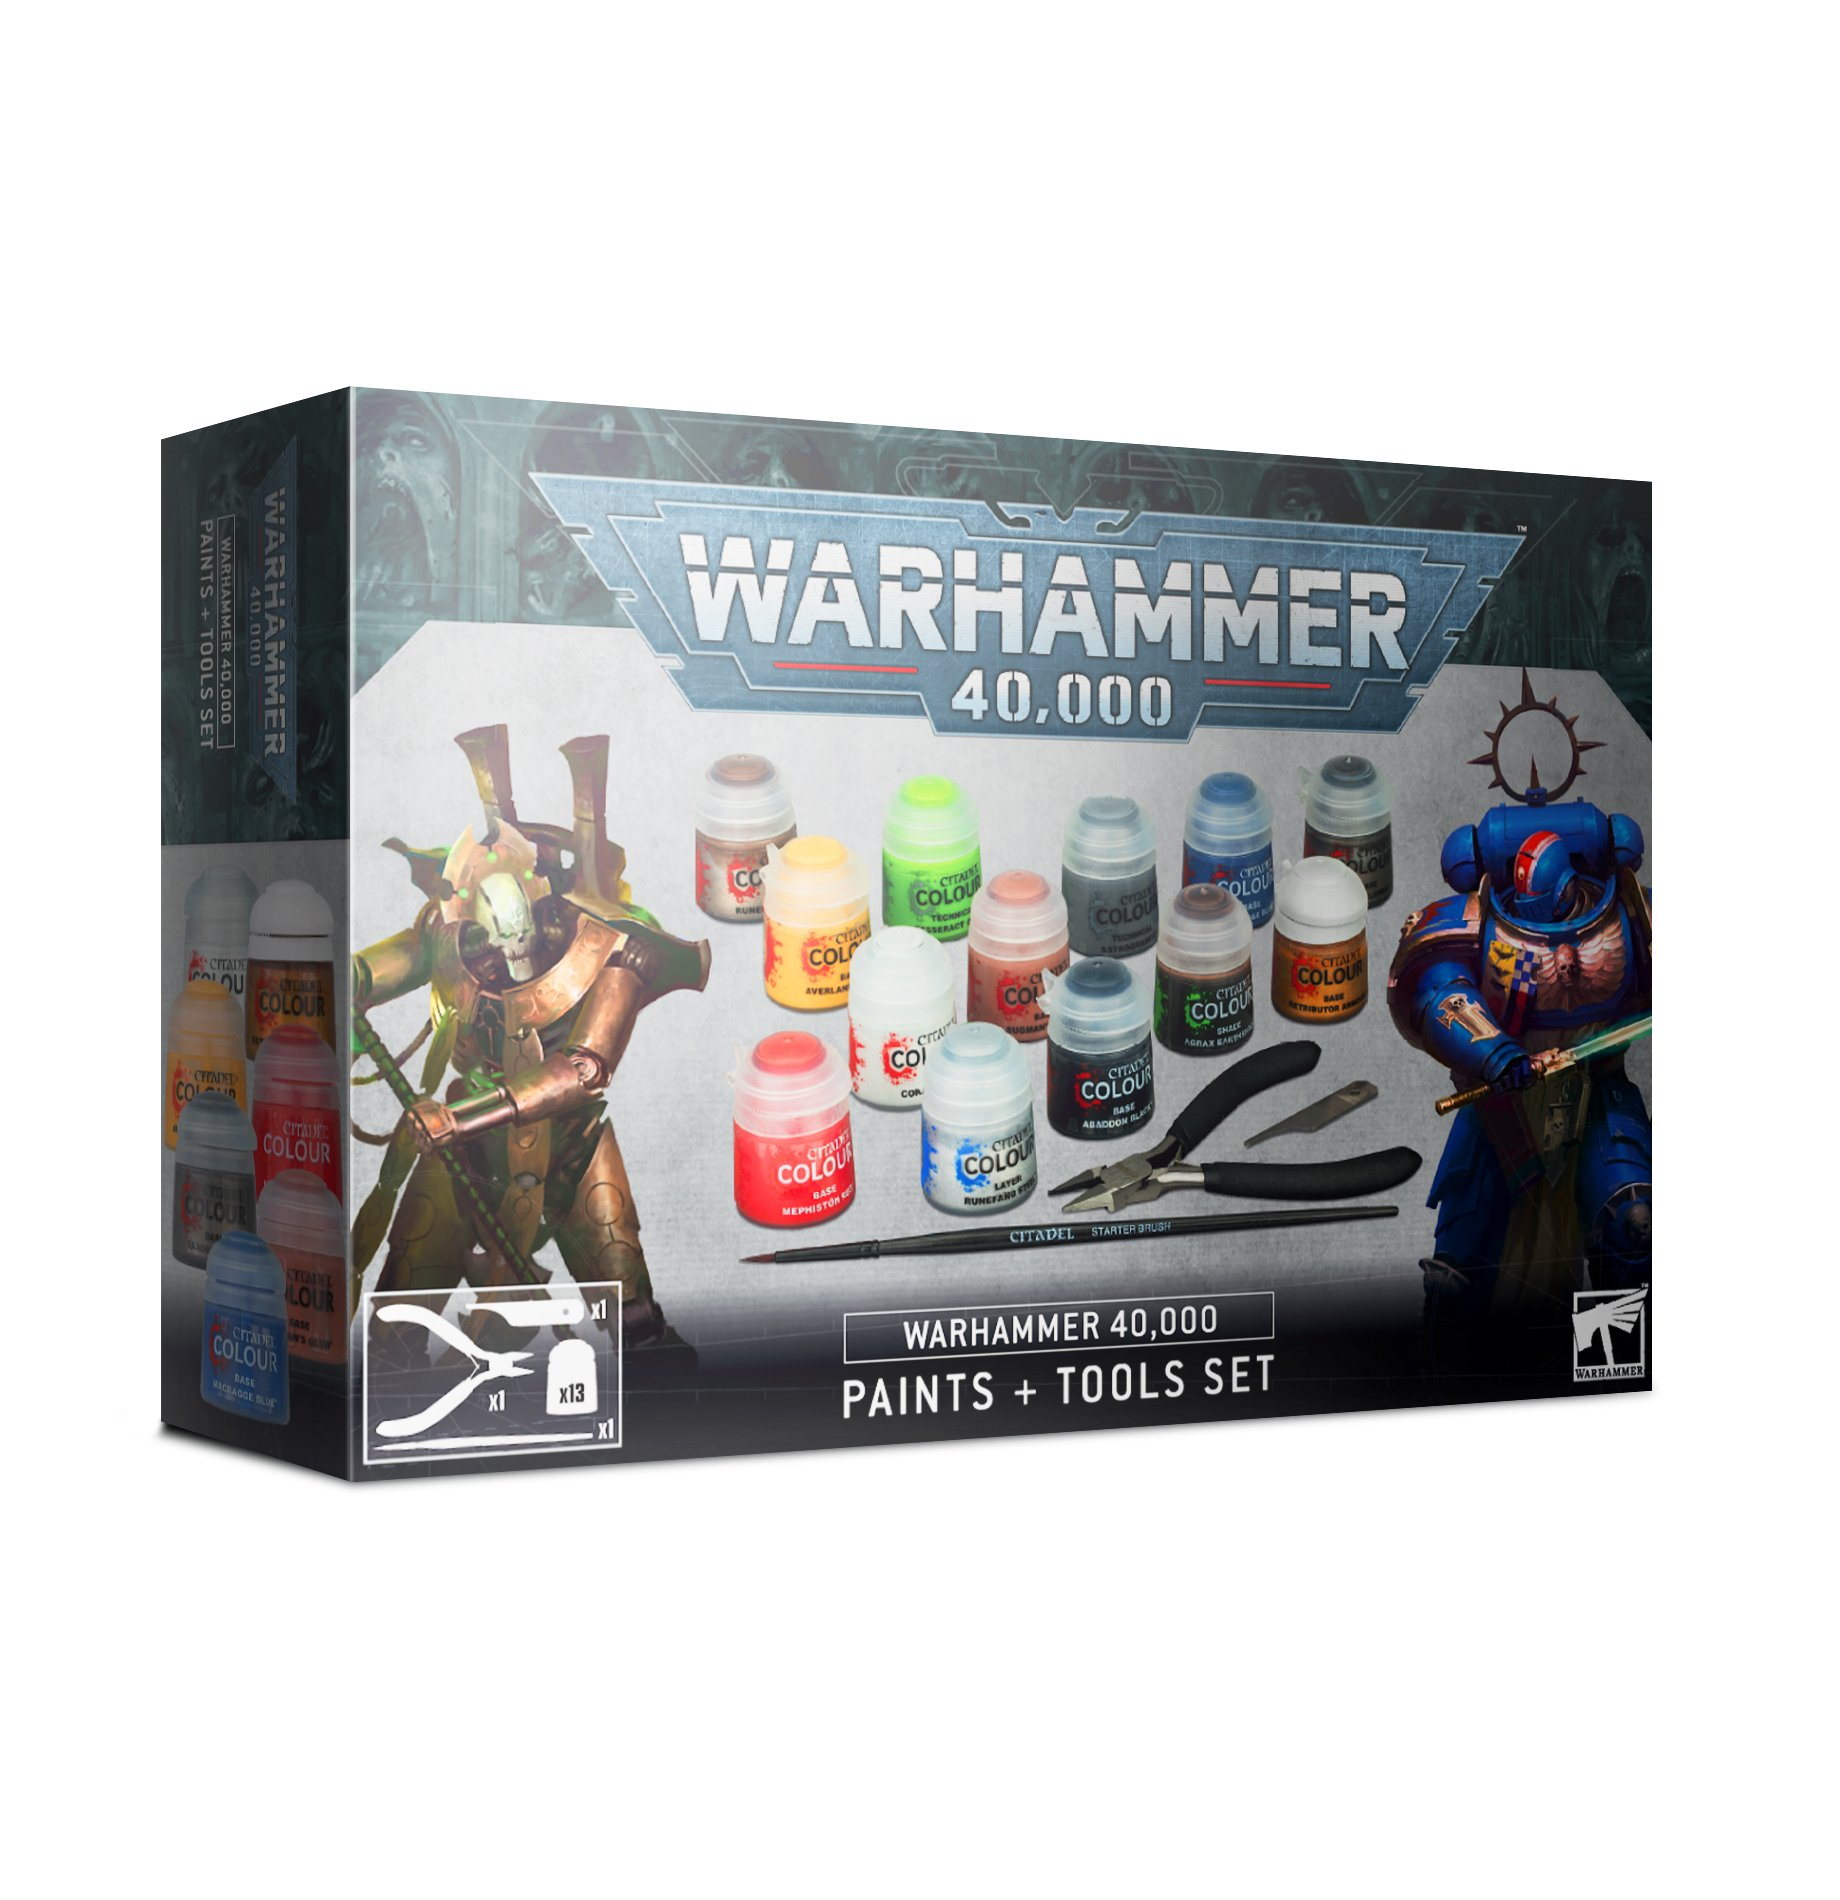 Paint and Tools Set, Warhammer 40,000